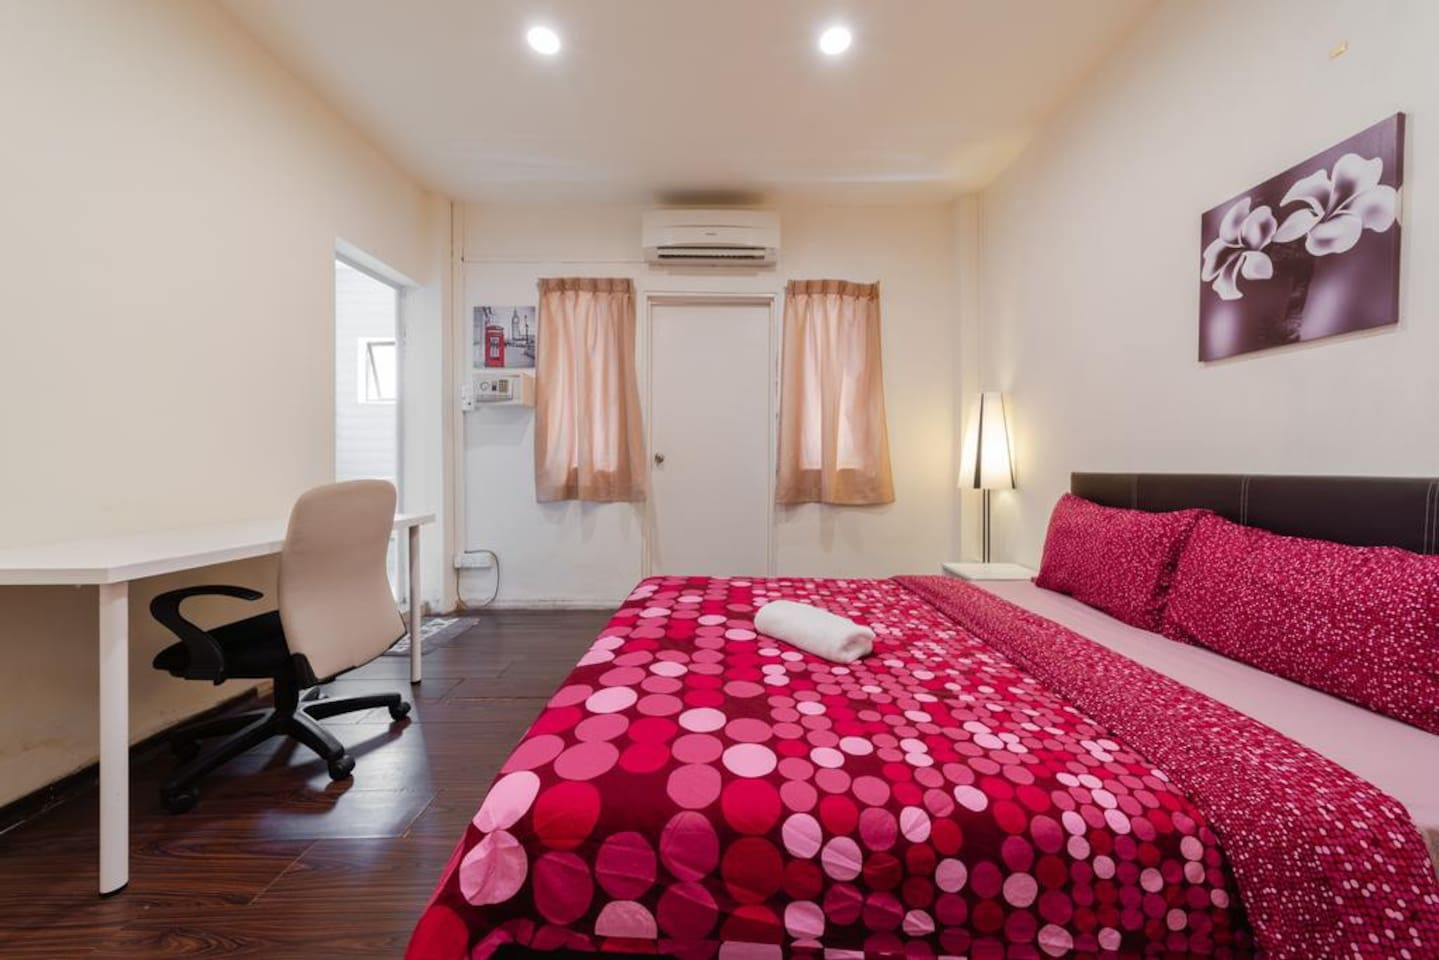 Room 205/305  Please note, what you see may be different from what is given to you, we assign rooms according to our availability.